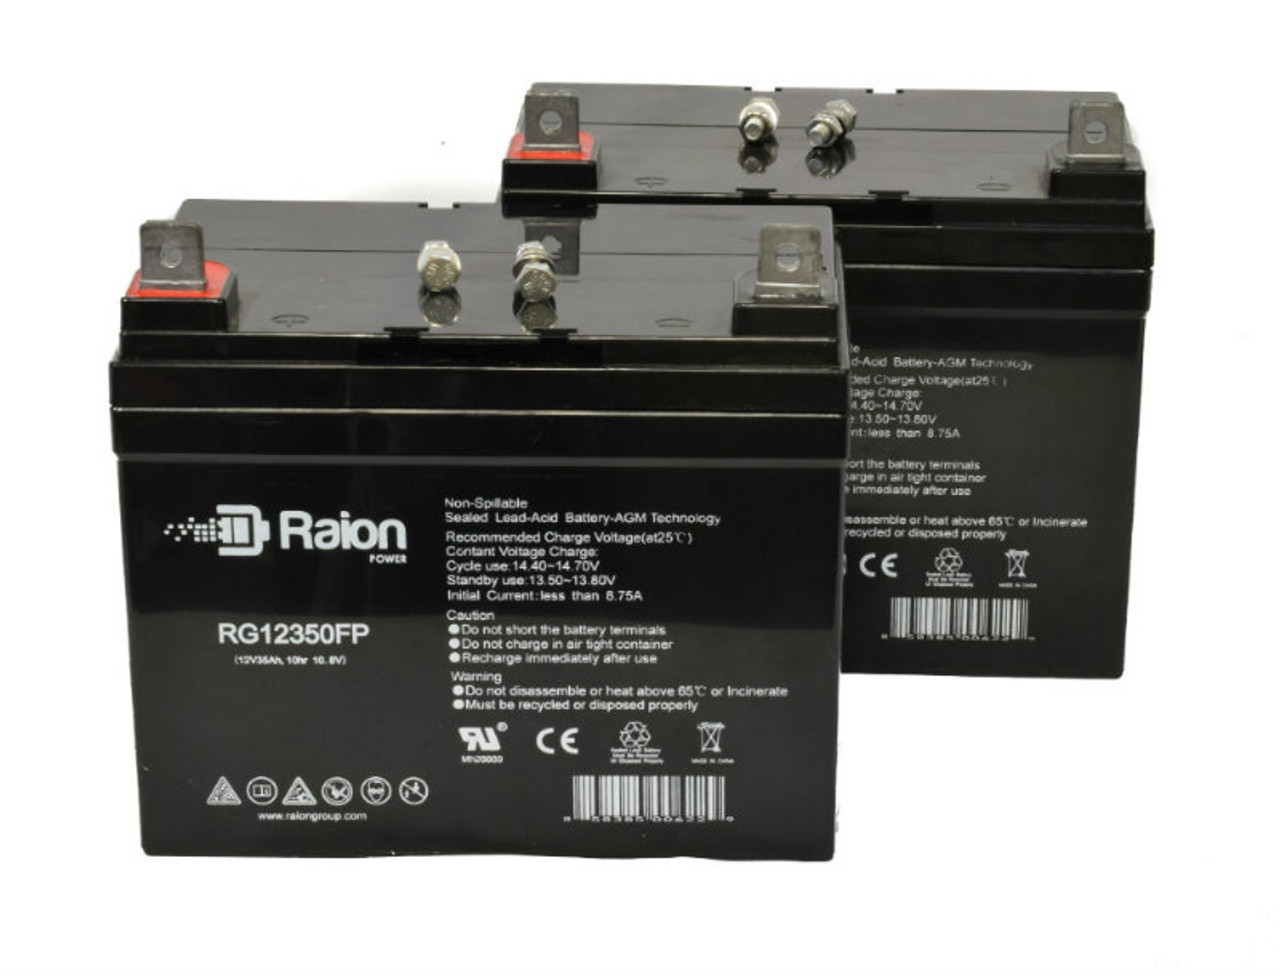 Raion Power RG12350FP Replacement Wheelchair Battery For Chauffeur Mobility Chauffer Scooter (2 Pack)